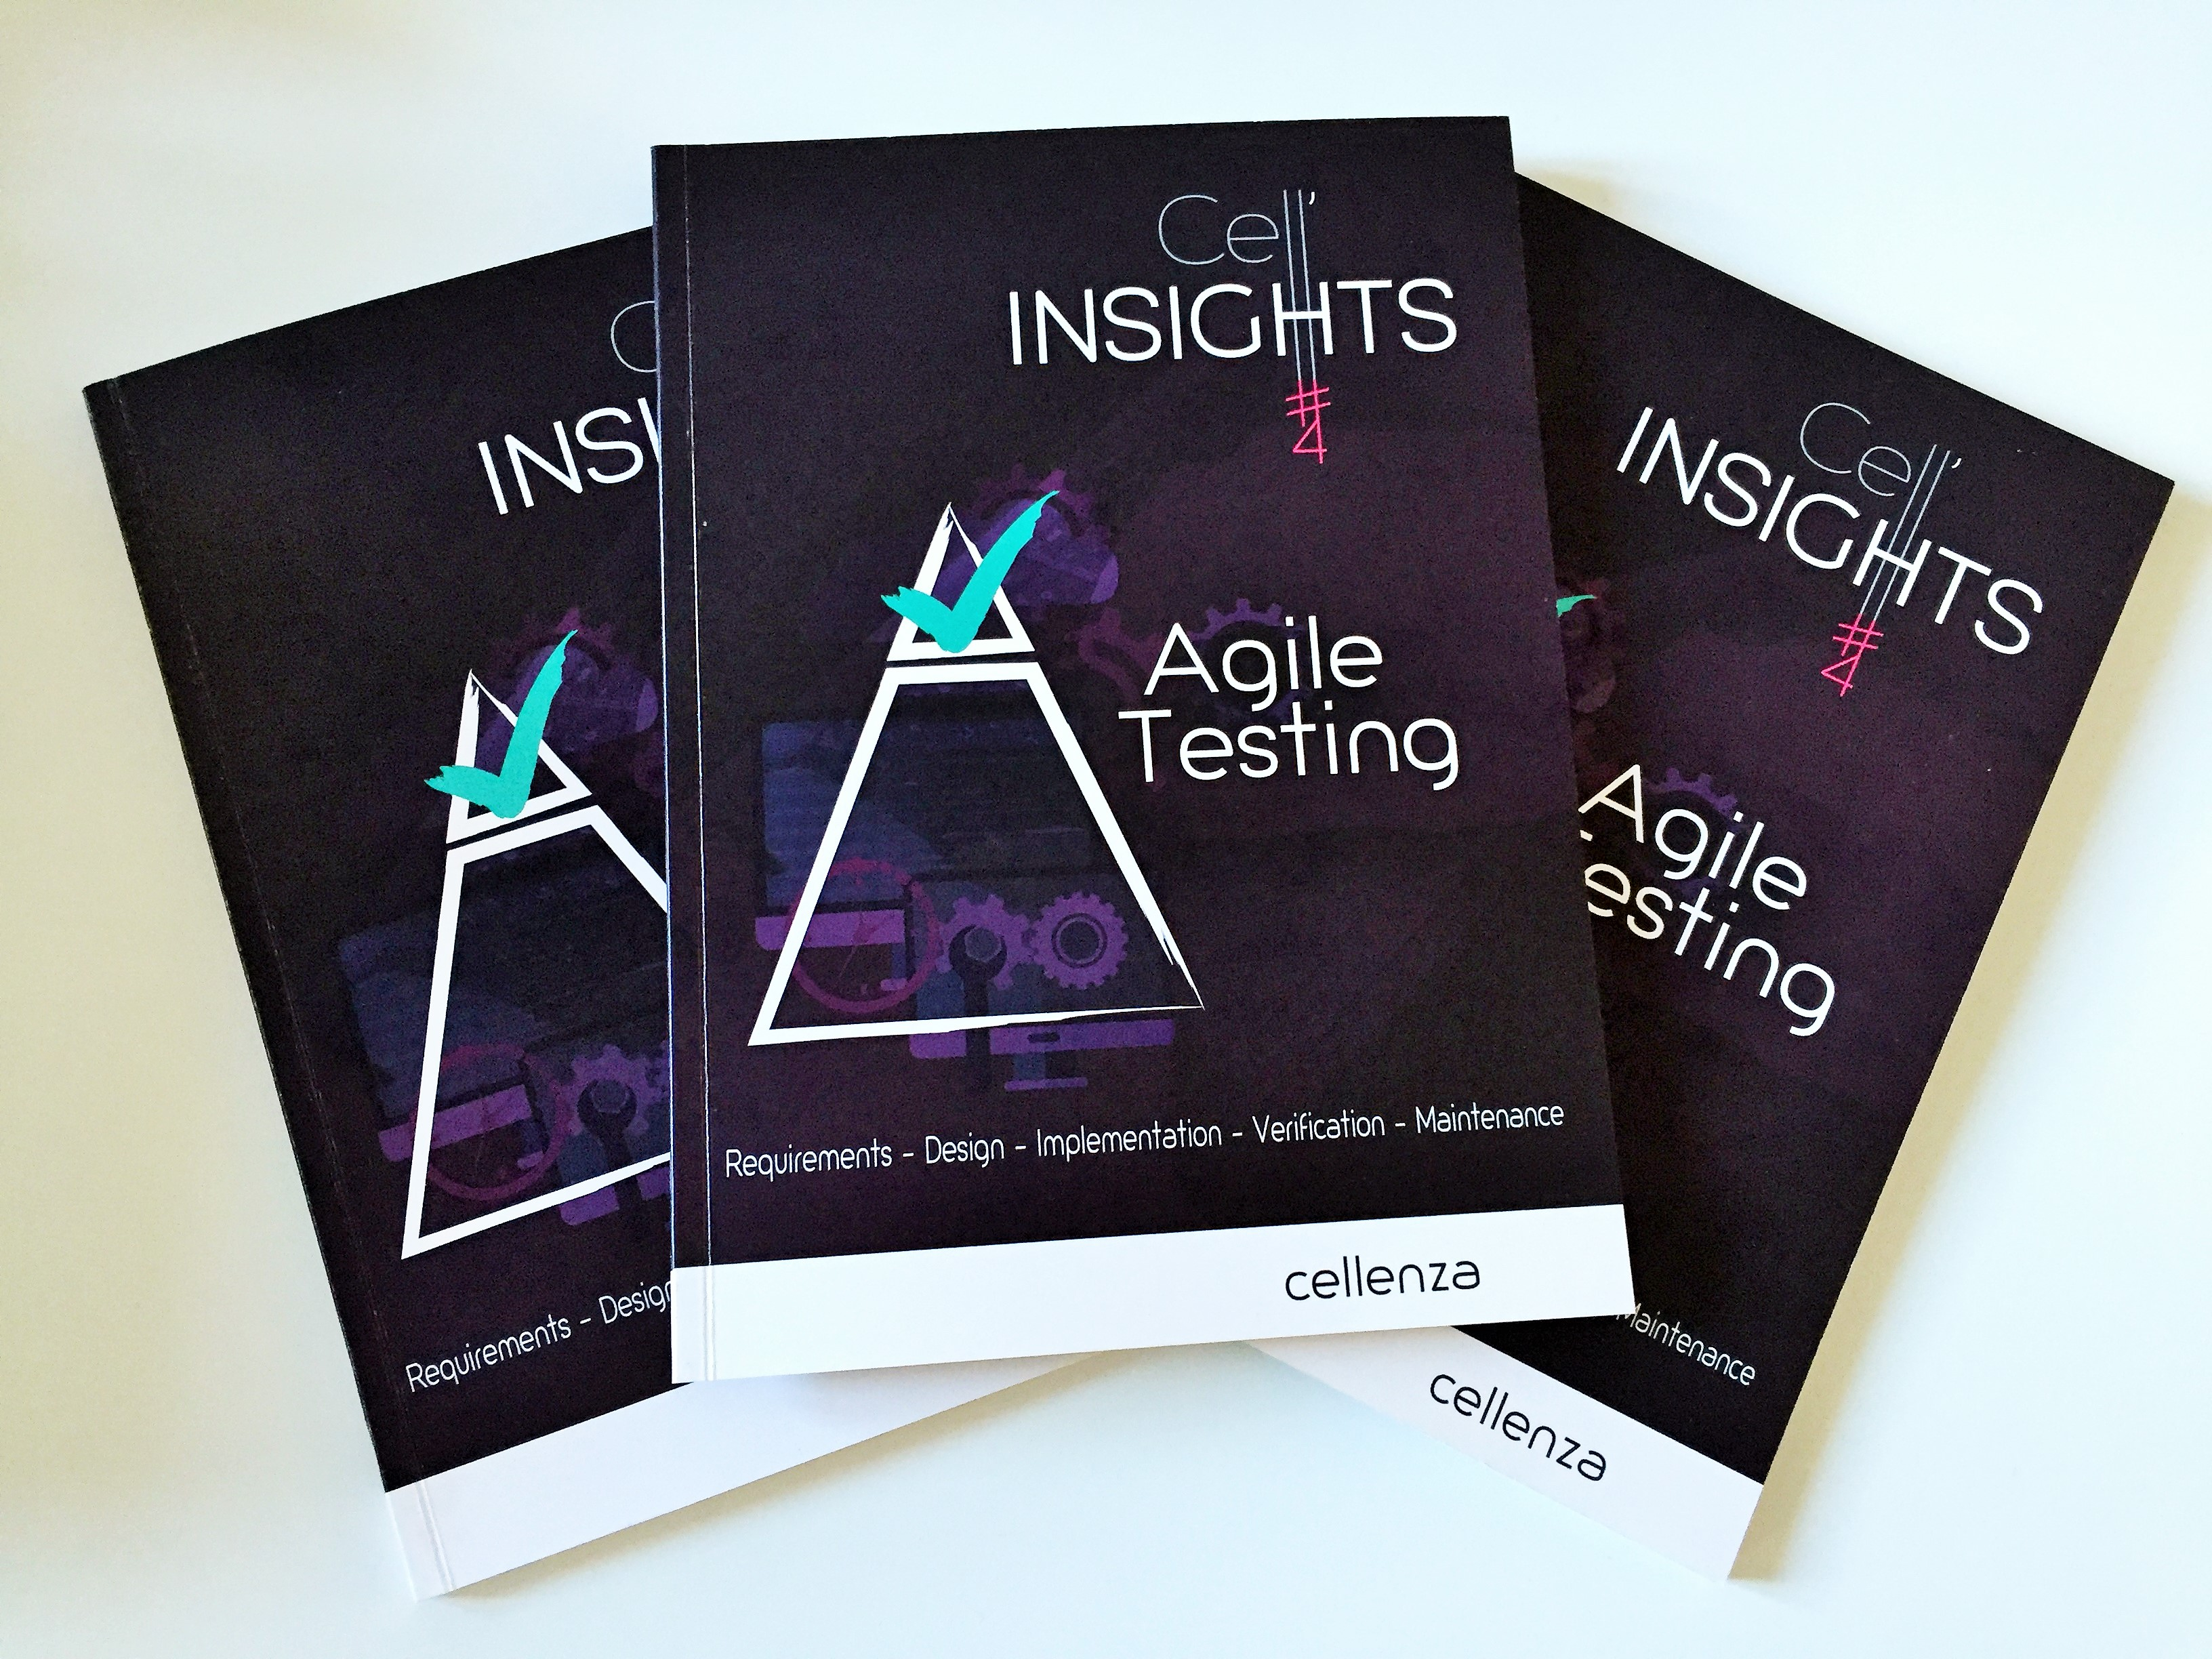 Cell'Insights #4 : Agile Testing